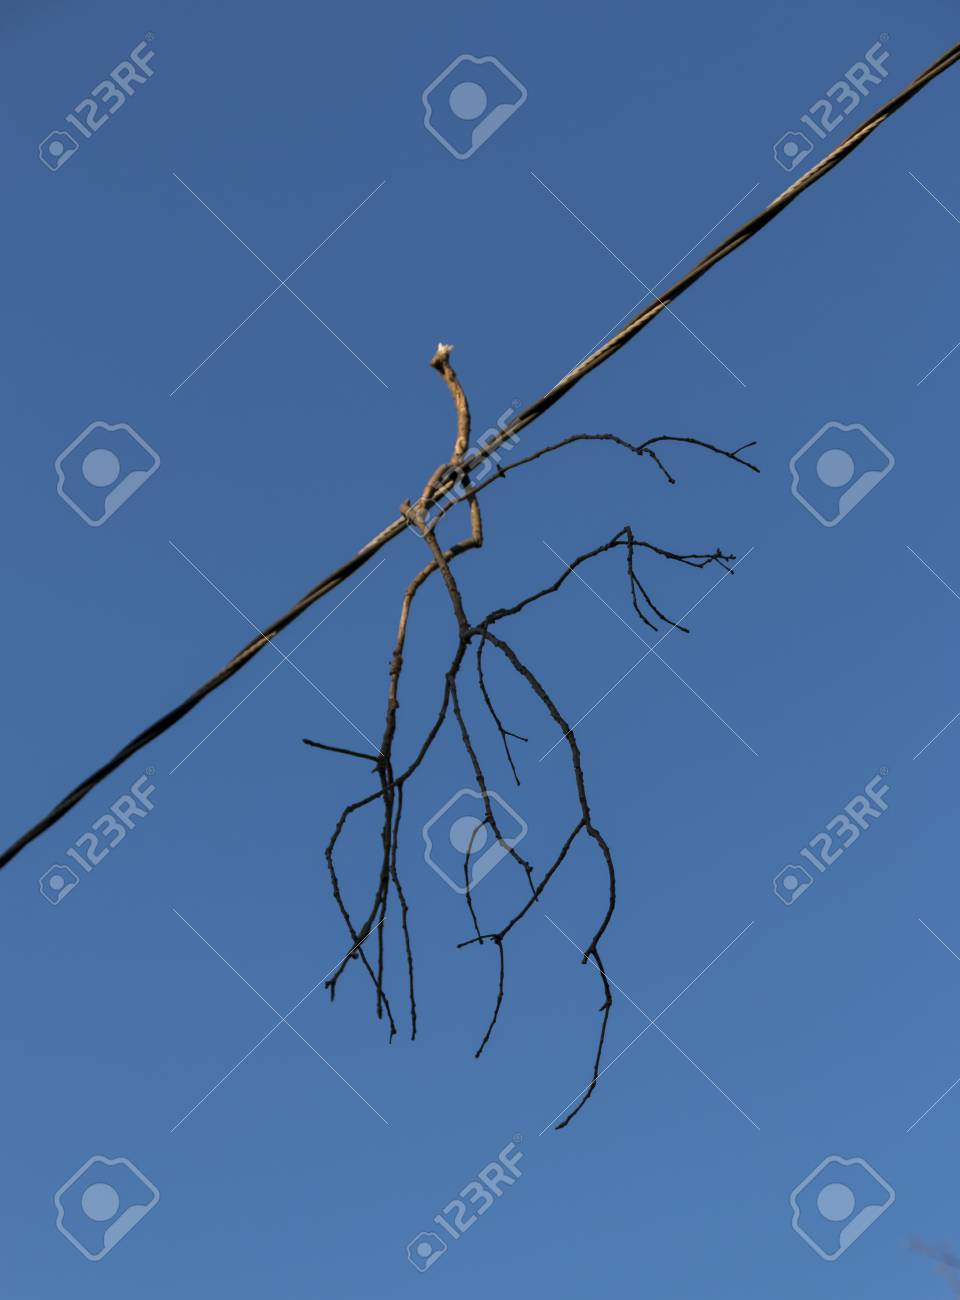 A Branch From A Tree Is Hanging On Edectricity Wire After A Very ...